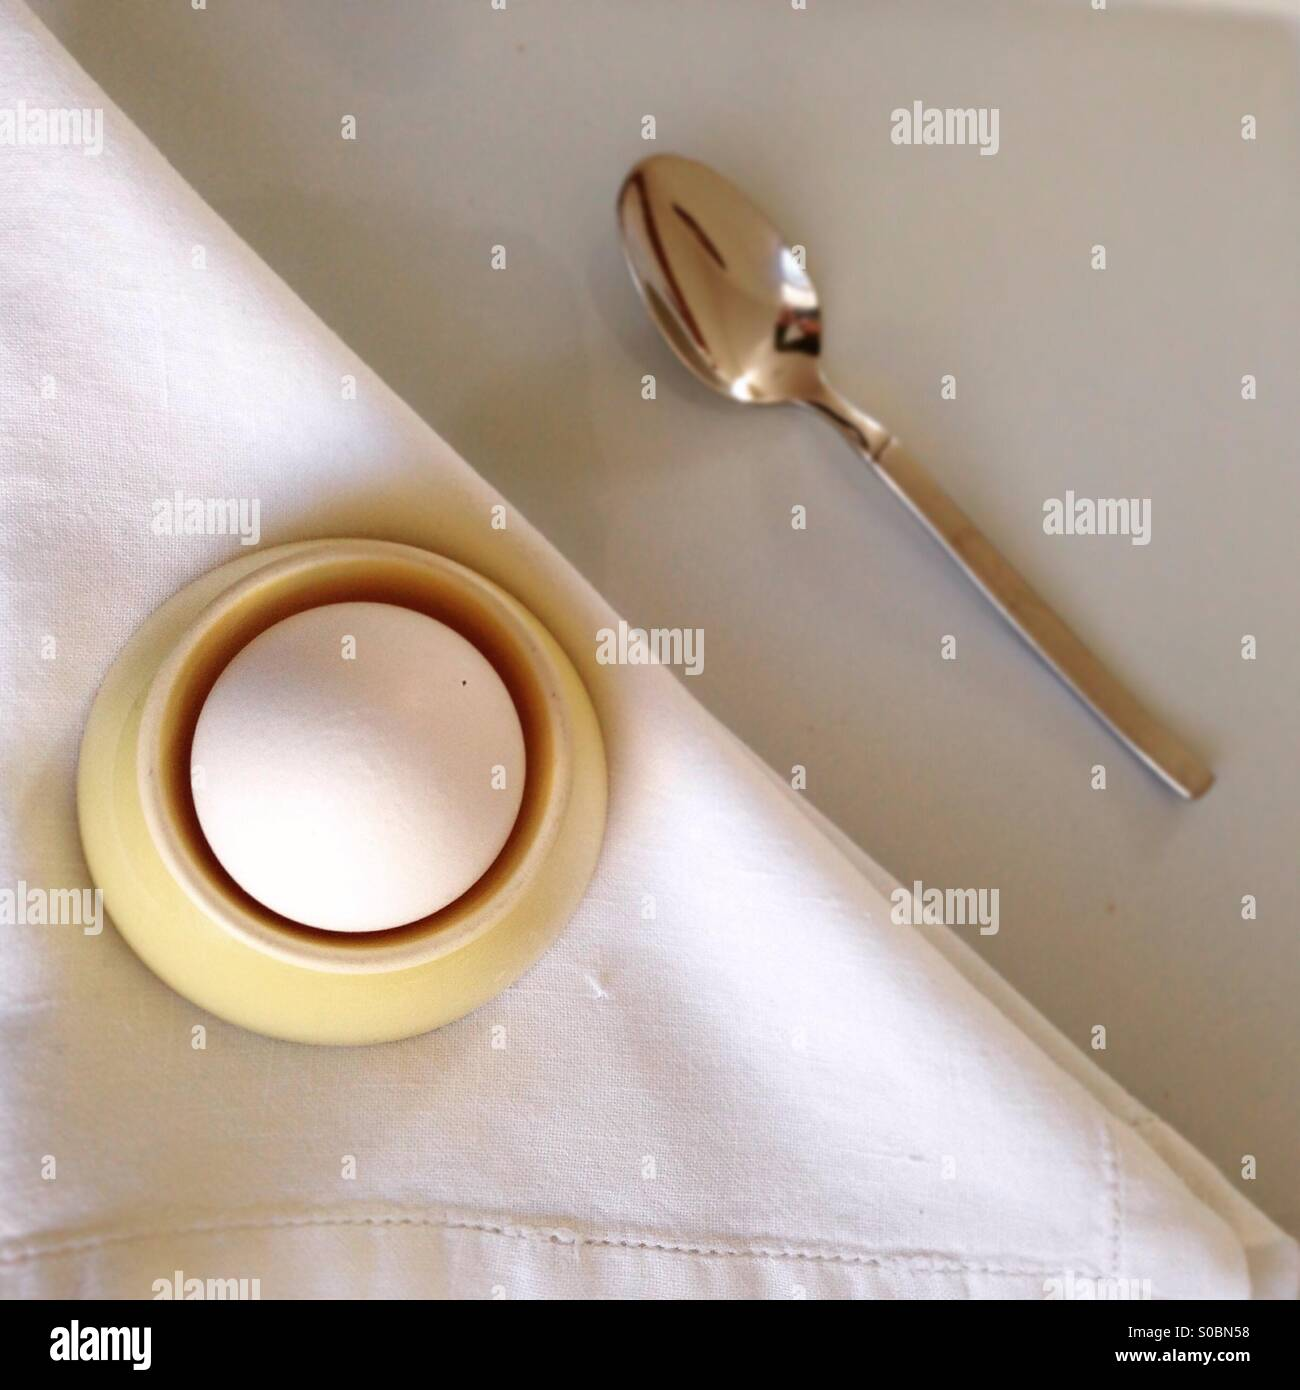 Boiled egg and spoon - Stock Image